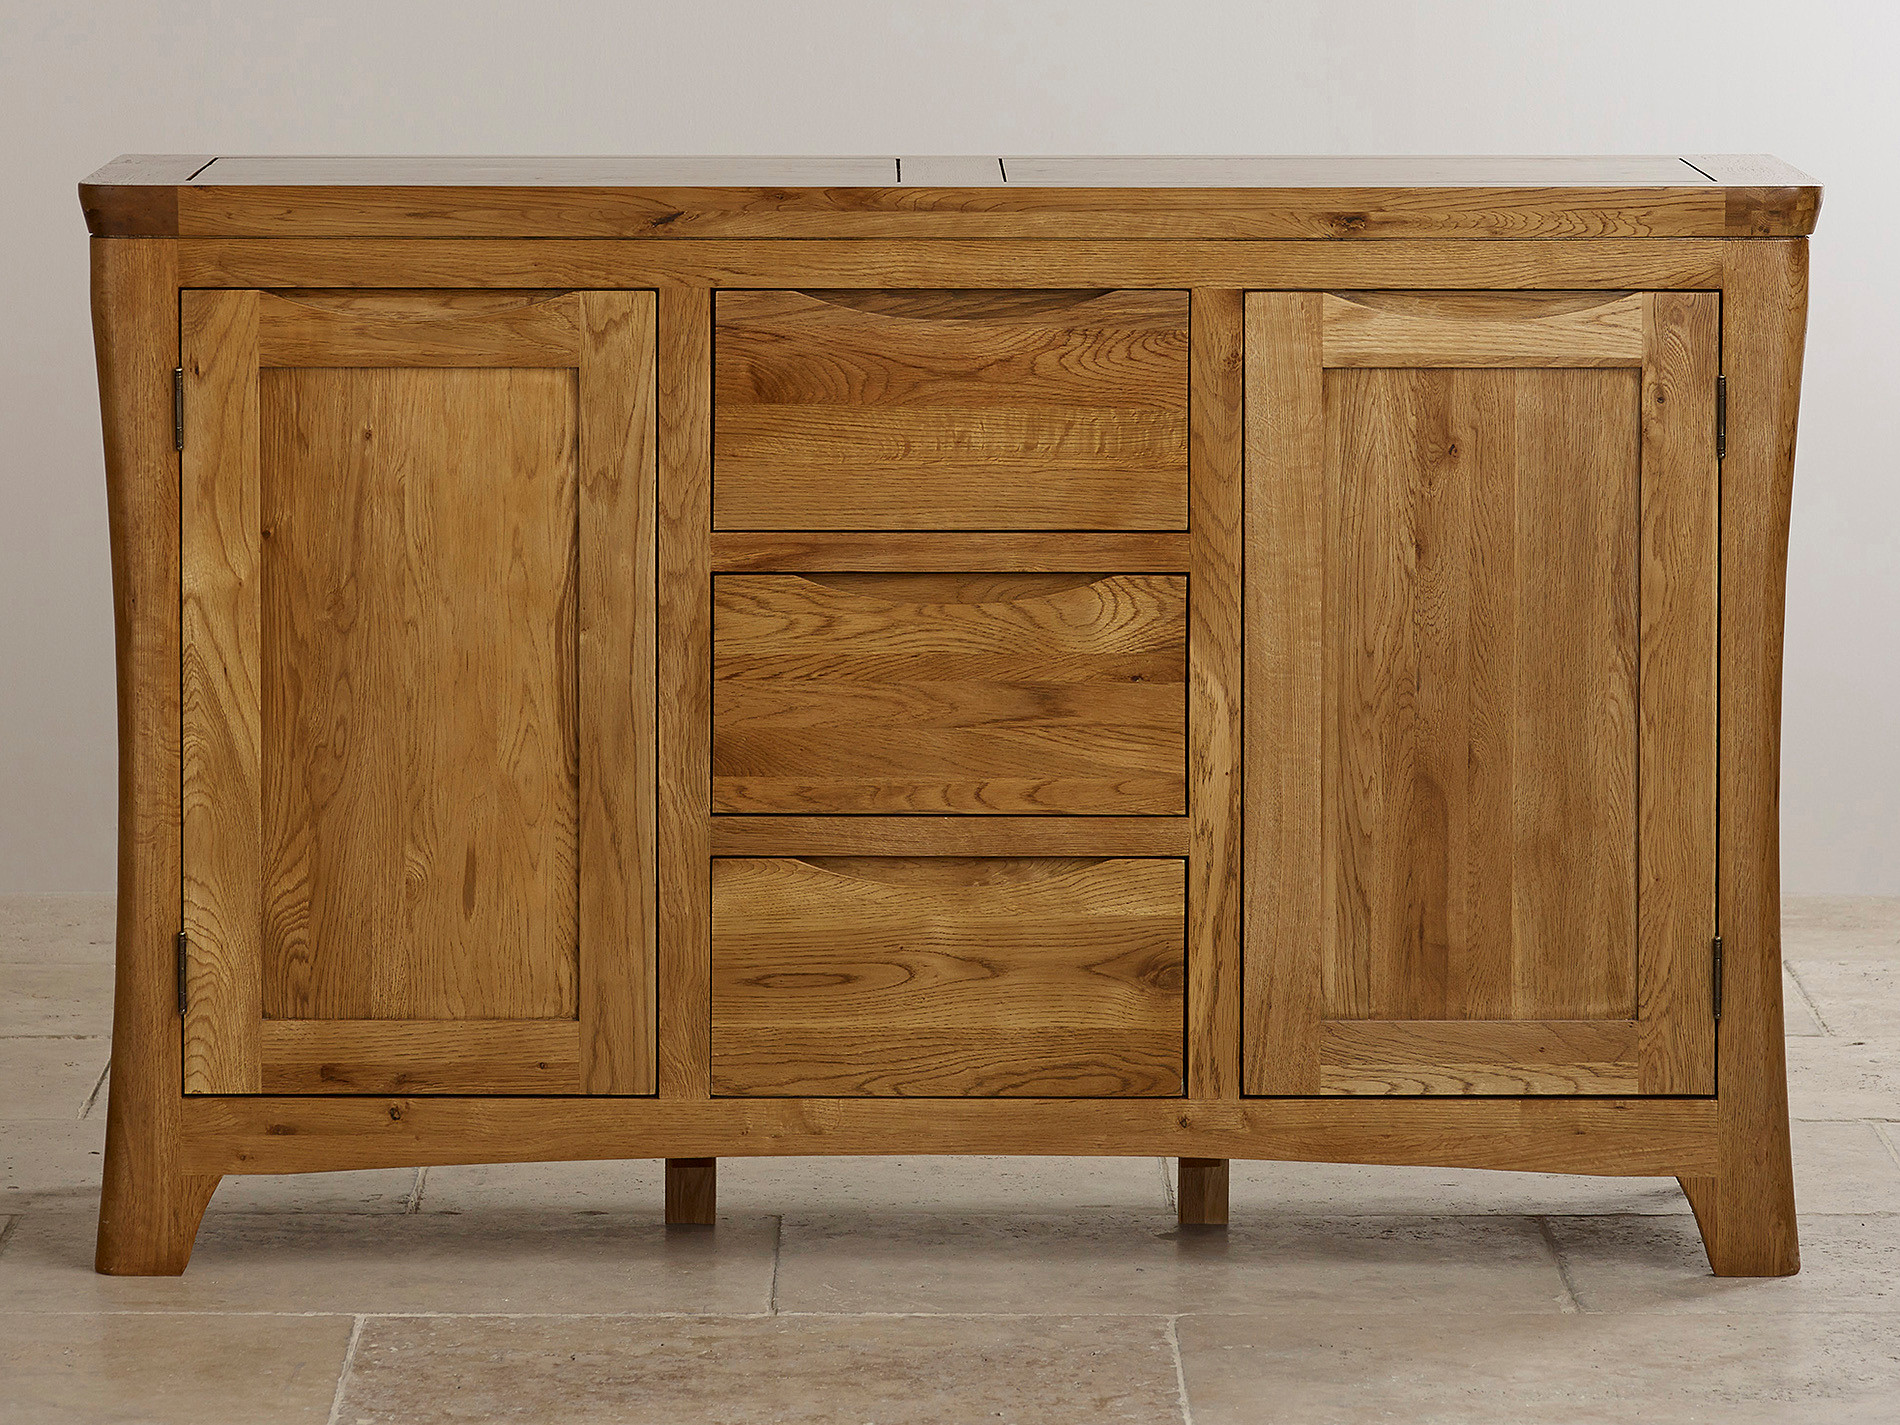 Orrick rustic solid oak large sideboard oak furniture land for Oak furniture land